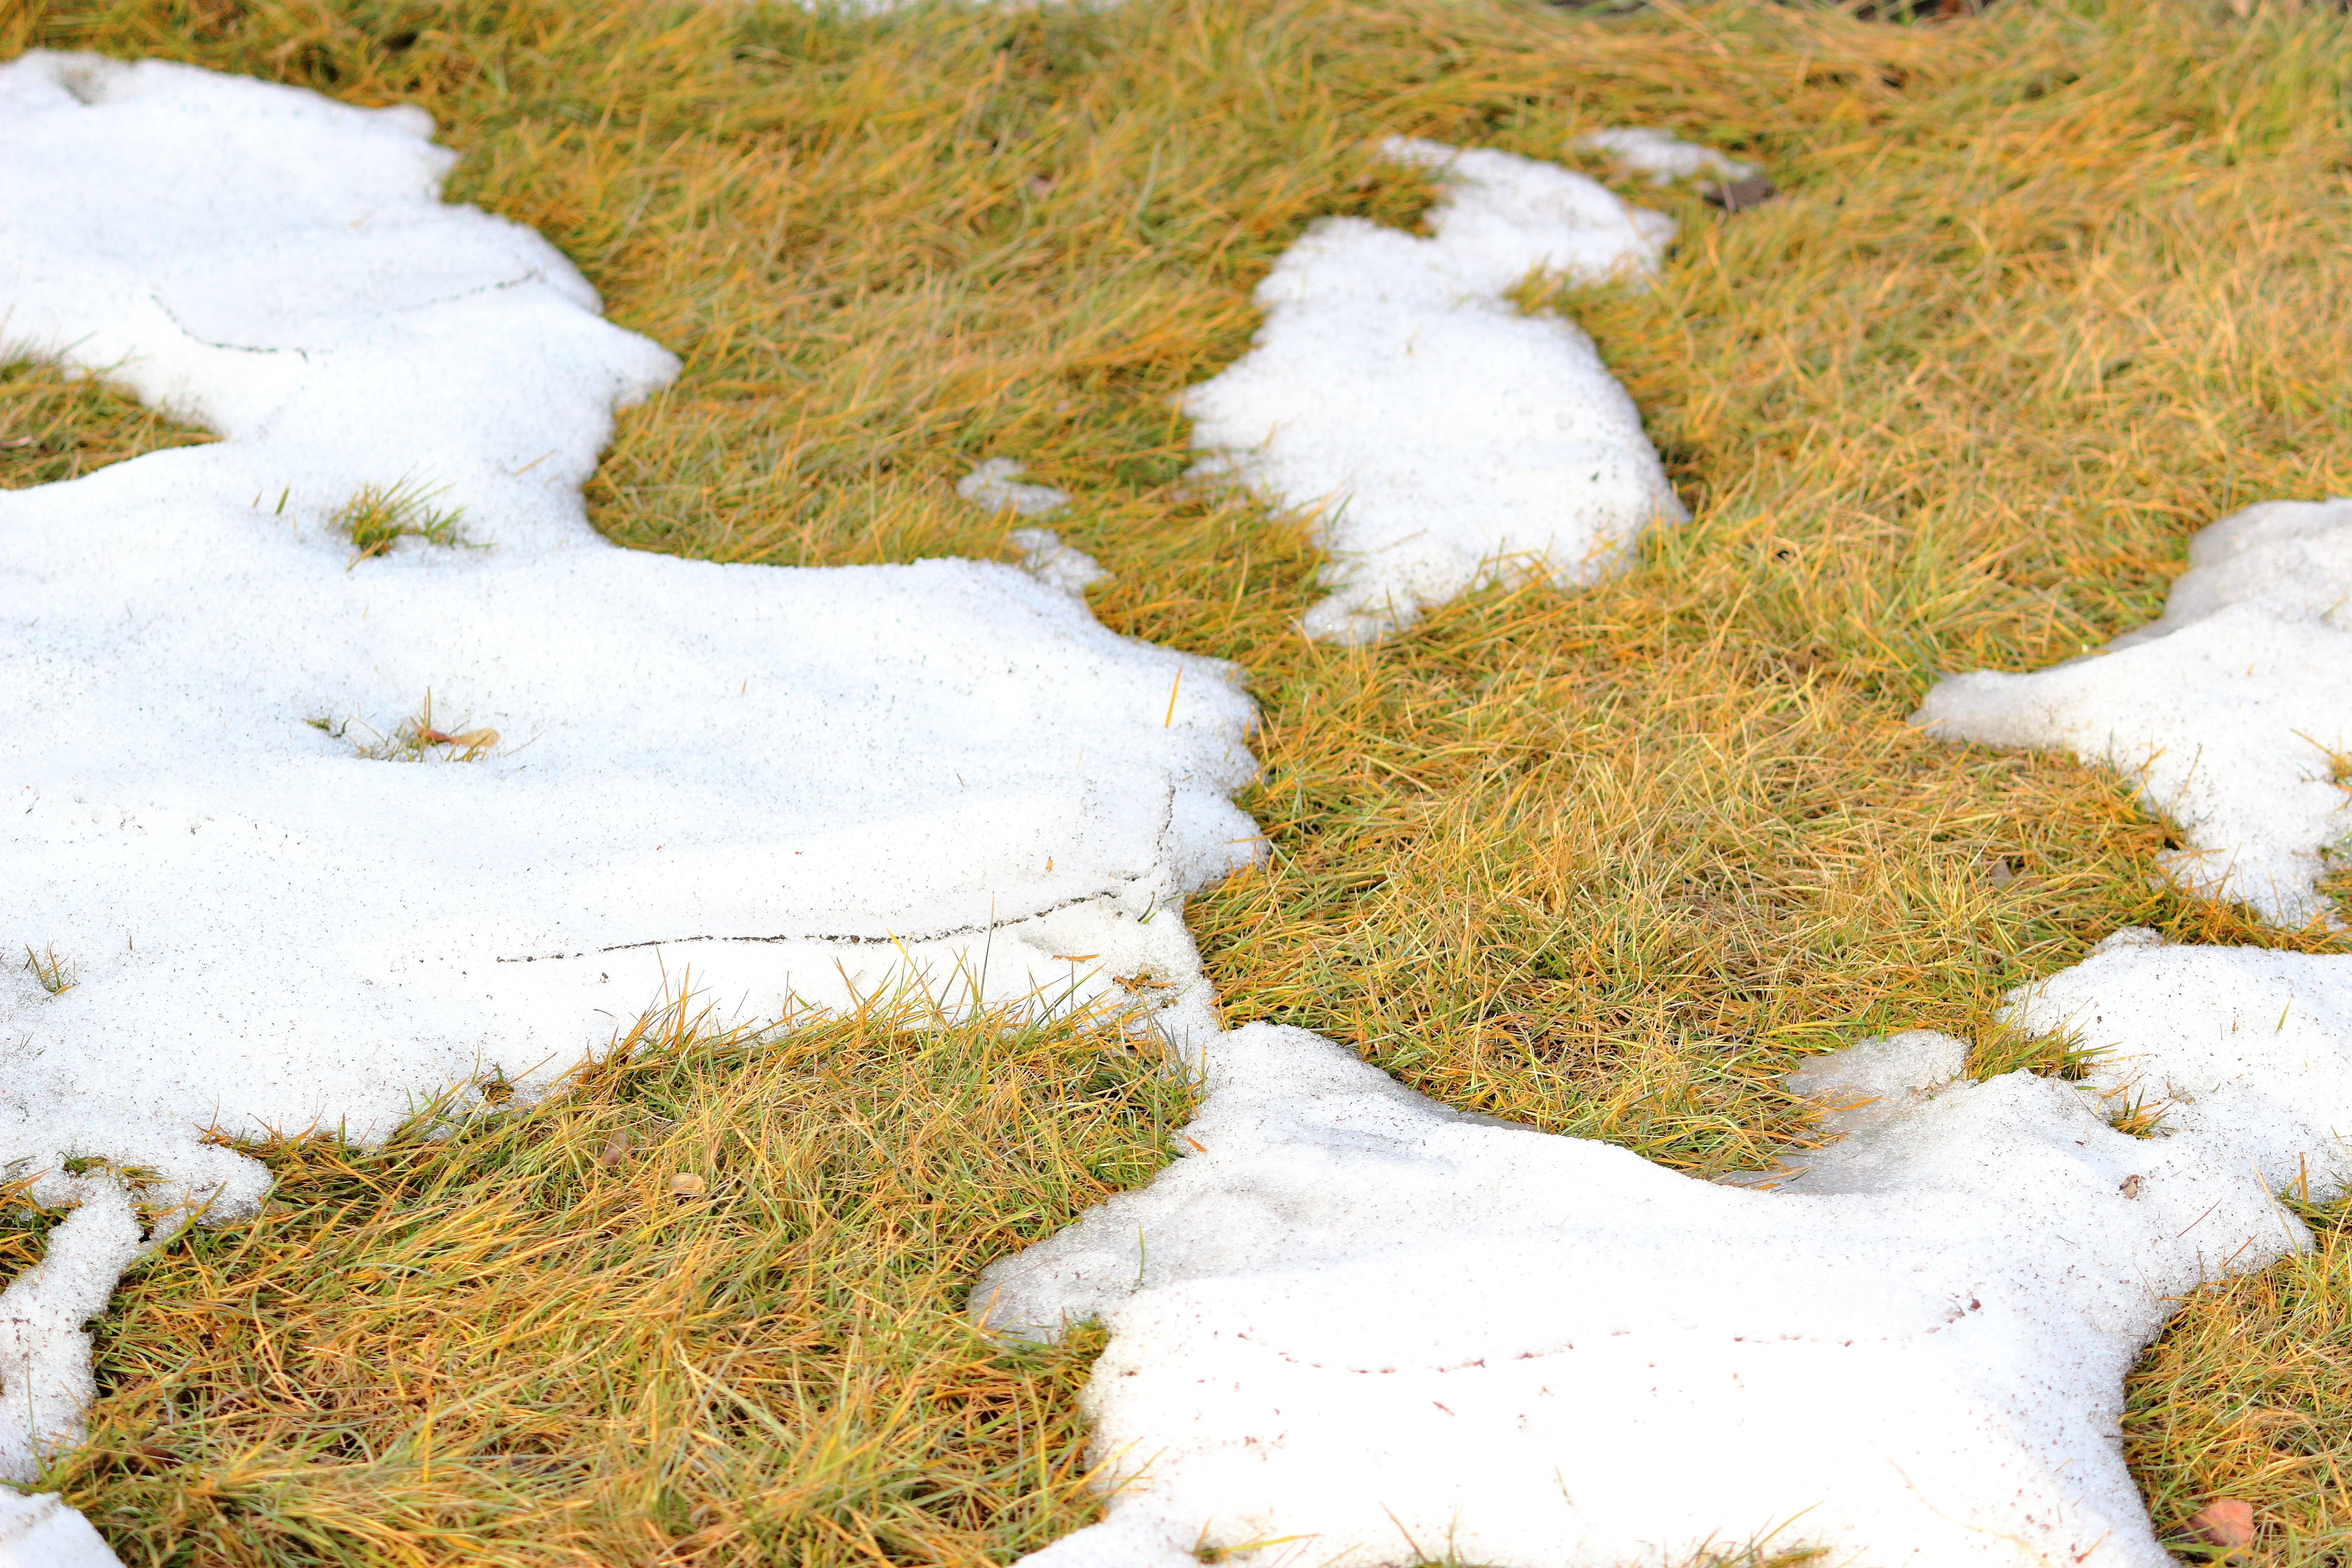 Spring snow melting on the grass.Texture of crystallized melting snow on green grass. Top view.